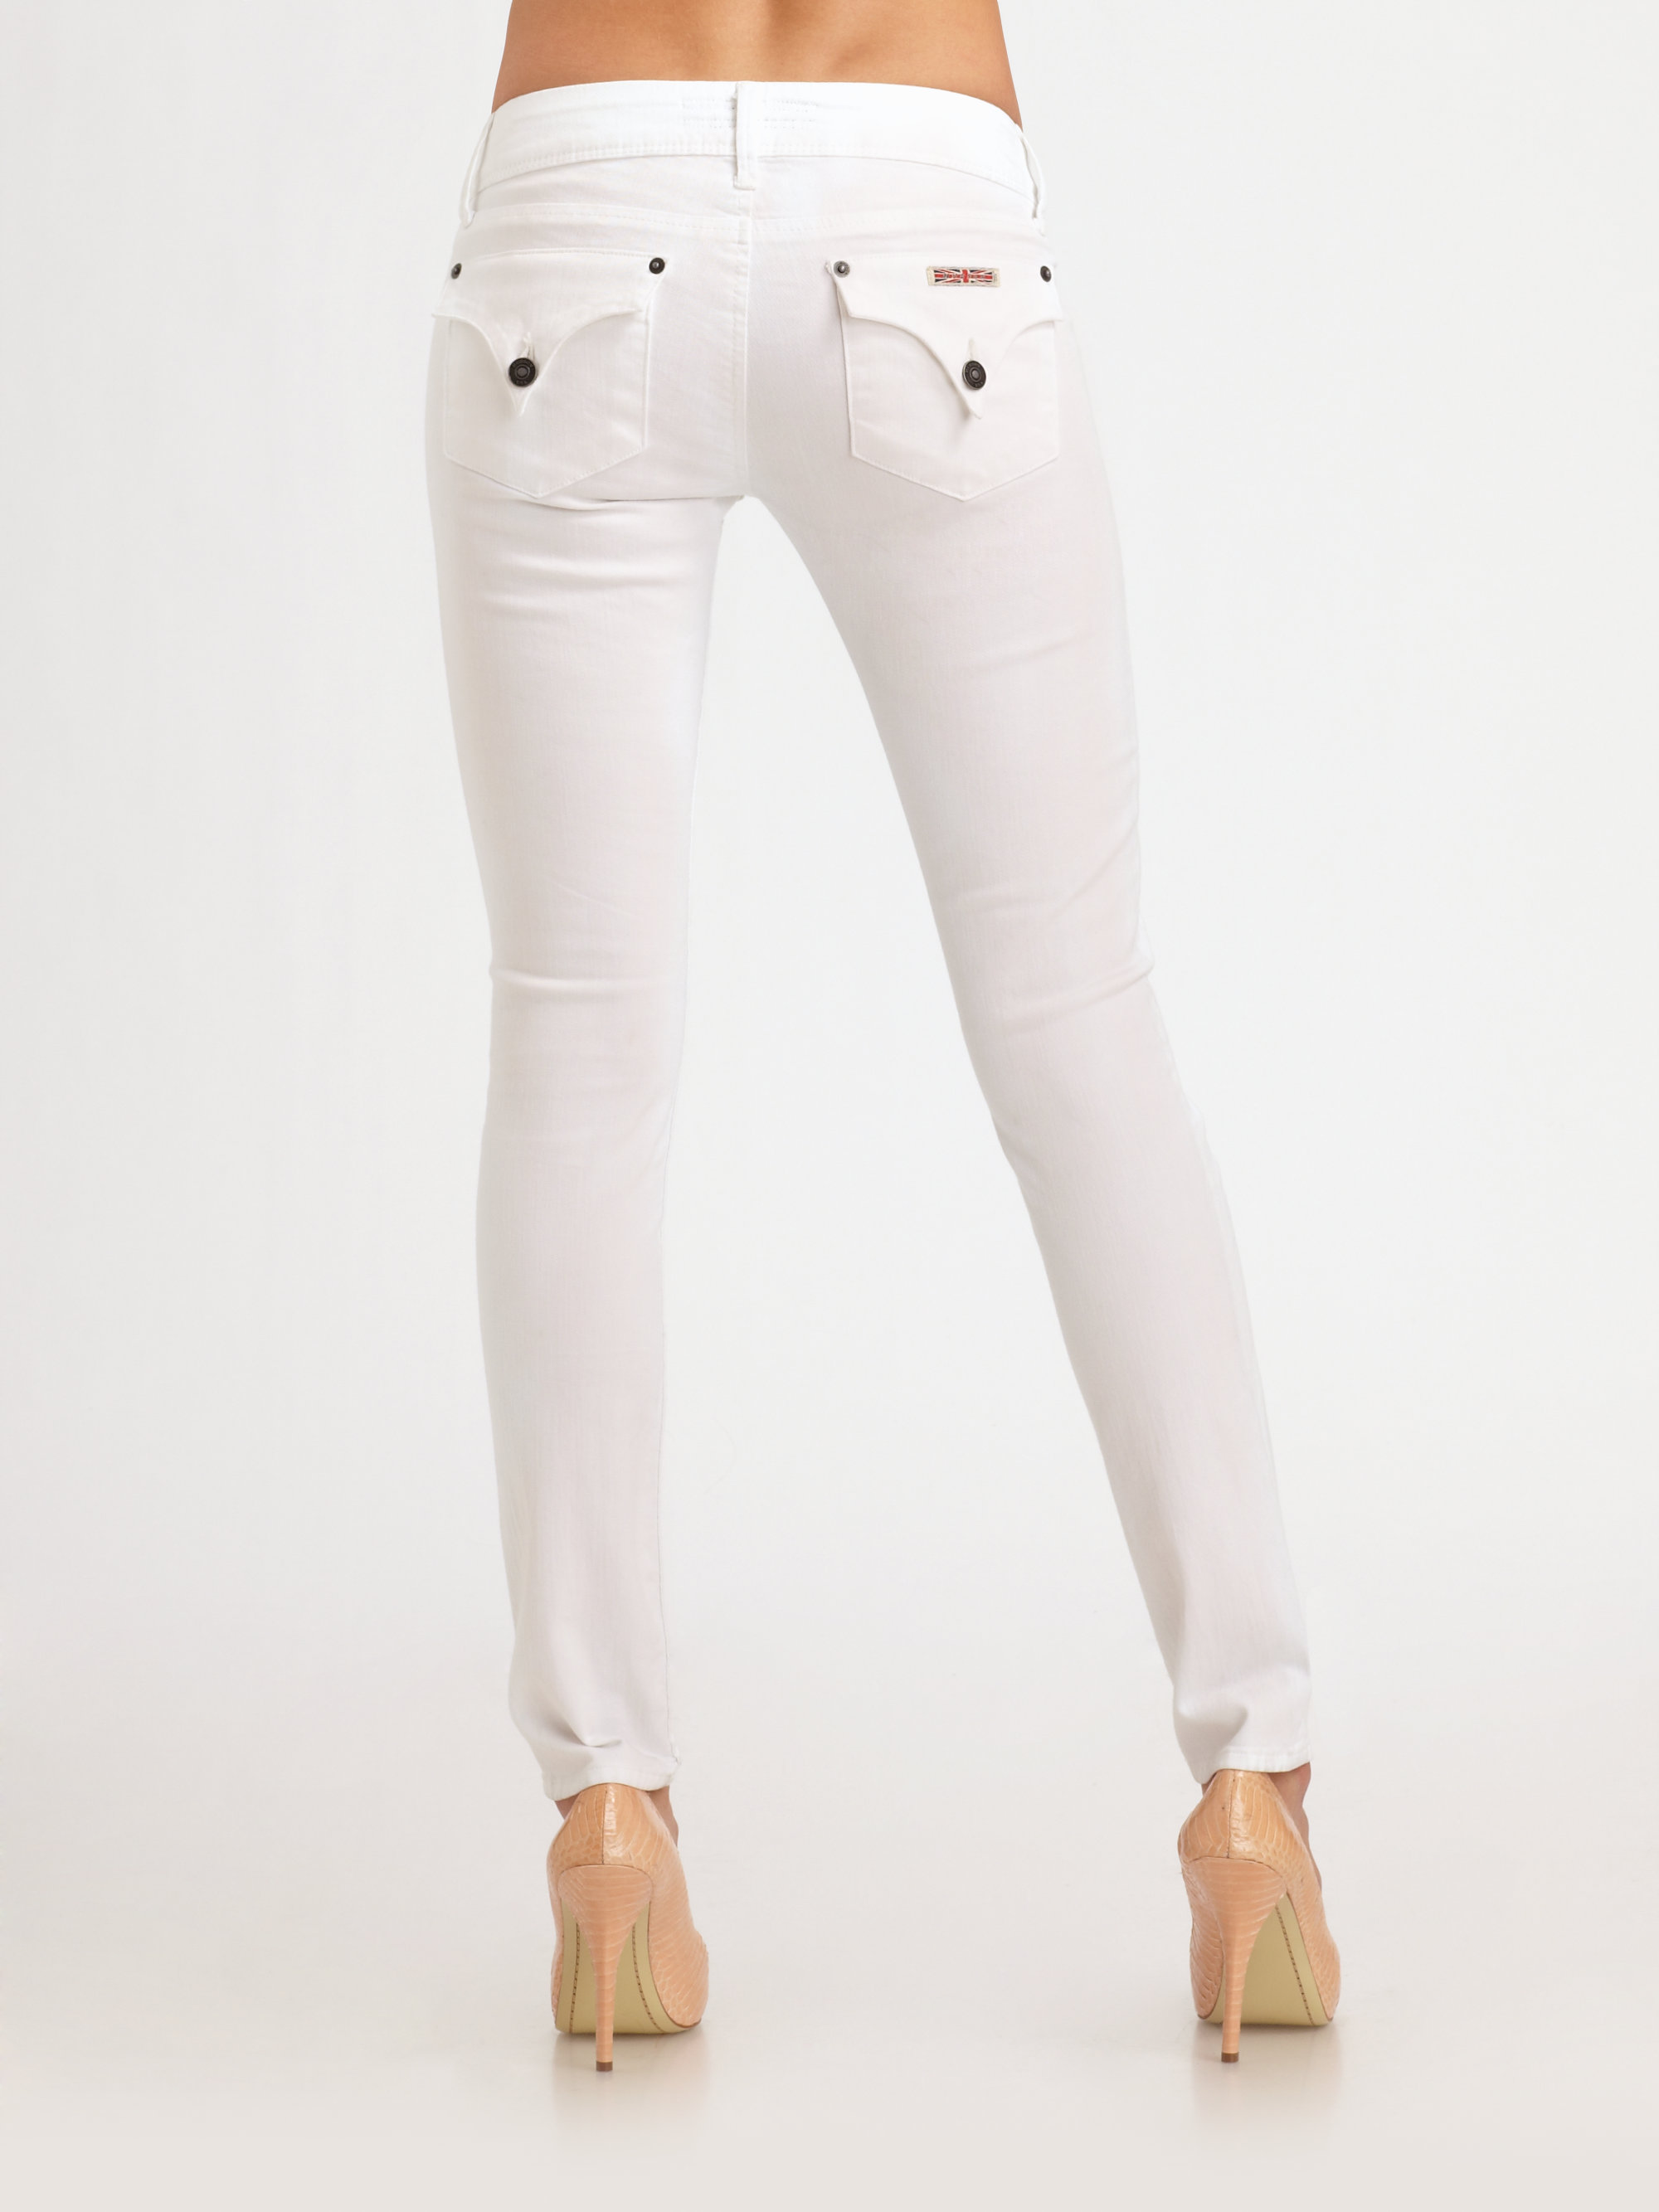 Hudson jeans Skinny Jeans in White | Lyst